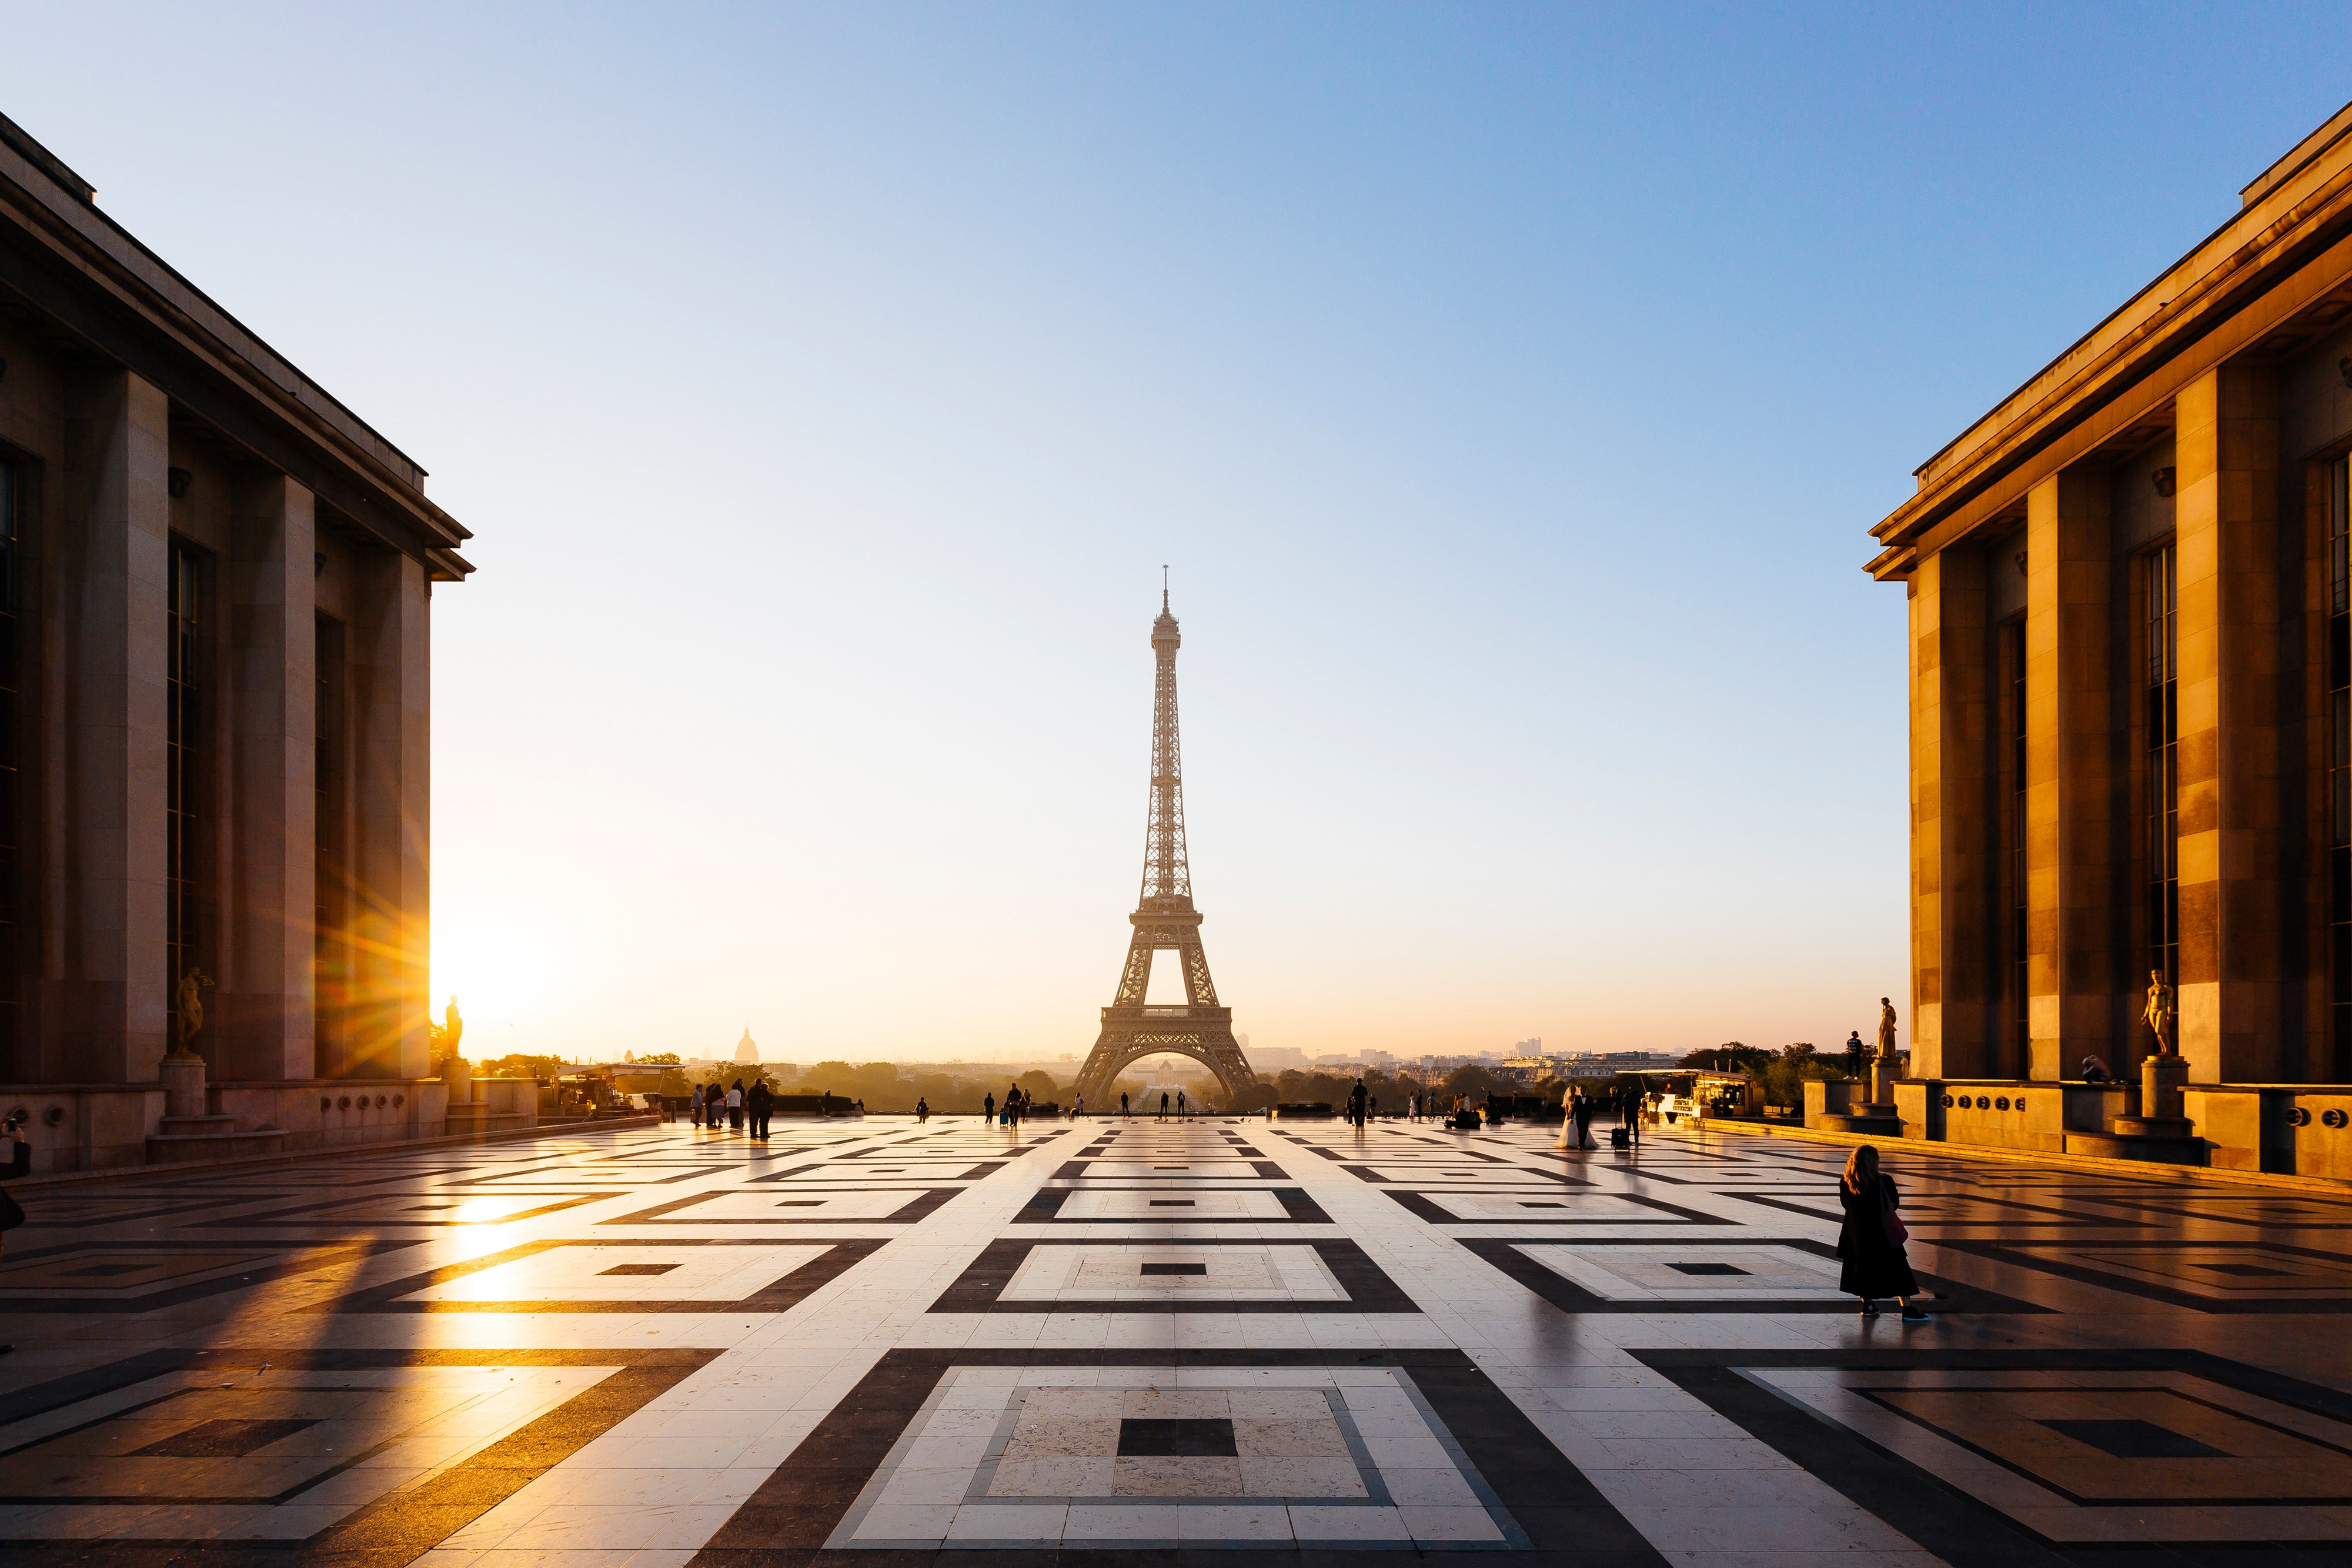 Eiffel-Tower_GettyImages-1060266626